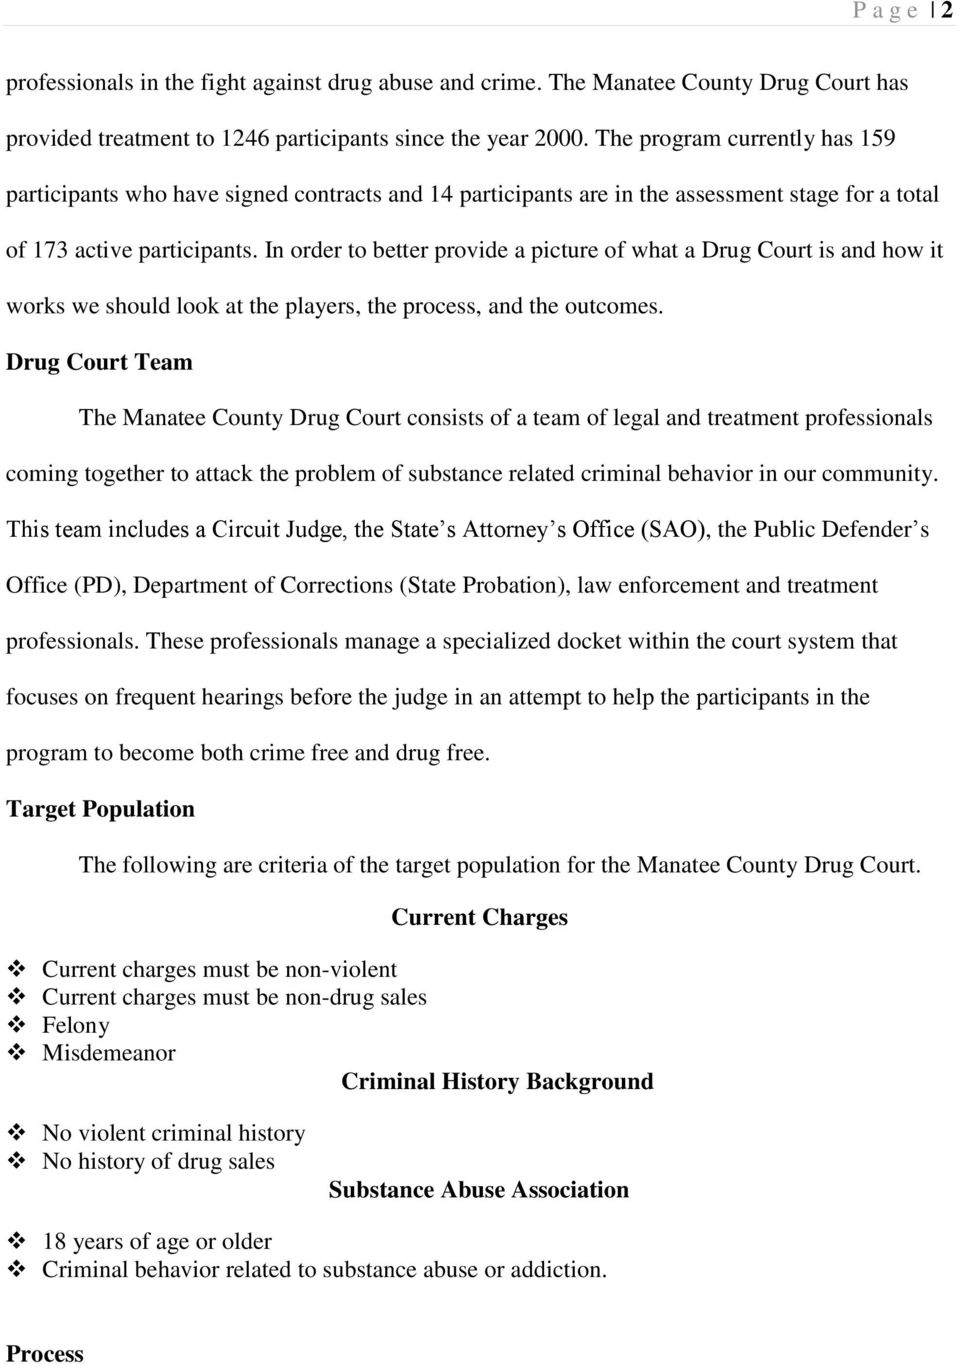 In order to better provide a picture of what a Drug Court is and how it works we should look at the players, the process, and the outcomes.